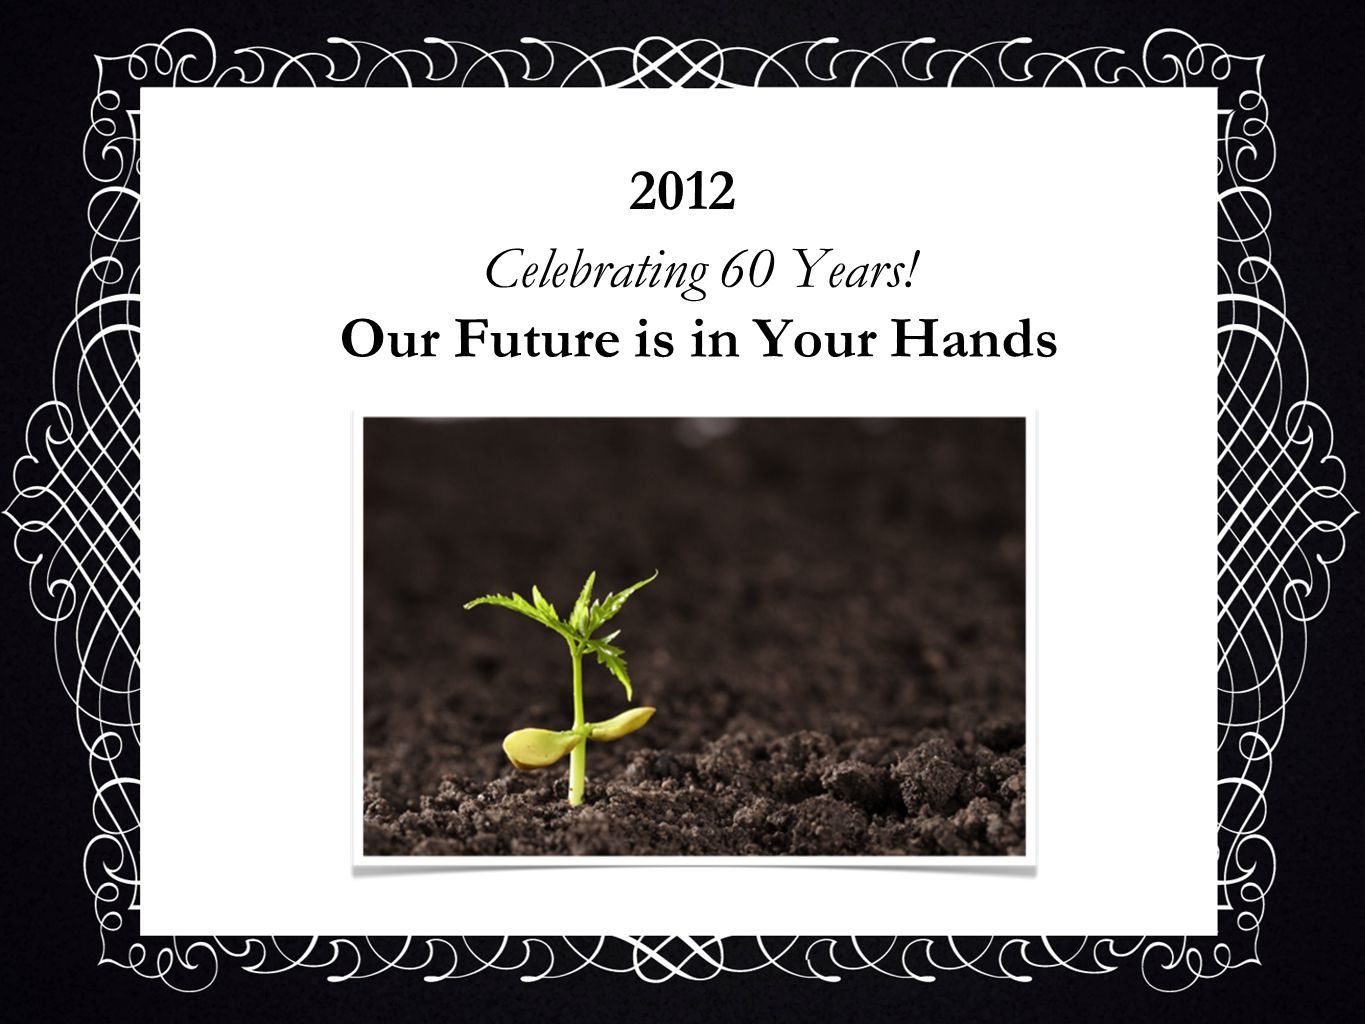 Celebrating 60 Years! Our Future is in Your Hands